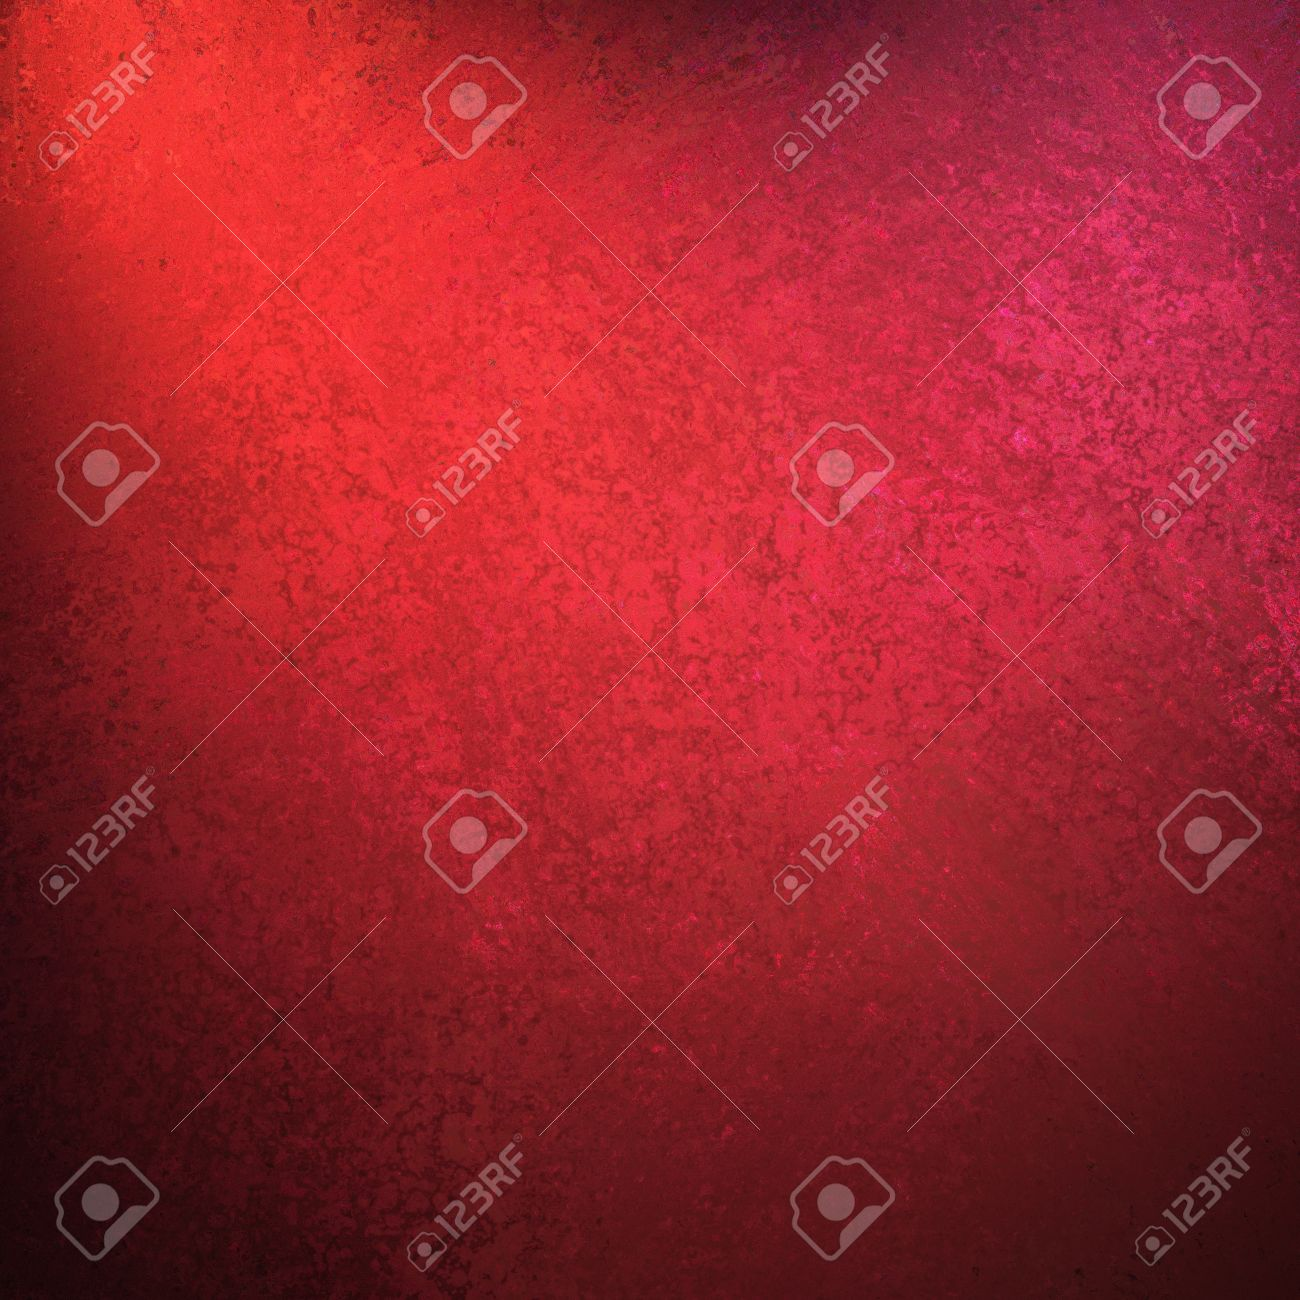 abstract red background with black vintage grunge background texture design of distressed dark gradient on border frame with red spotlight, red paper for brochure or wbsite template background layout Stock Photo - 15139248